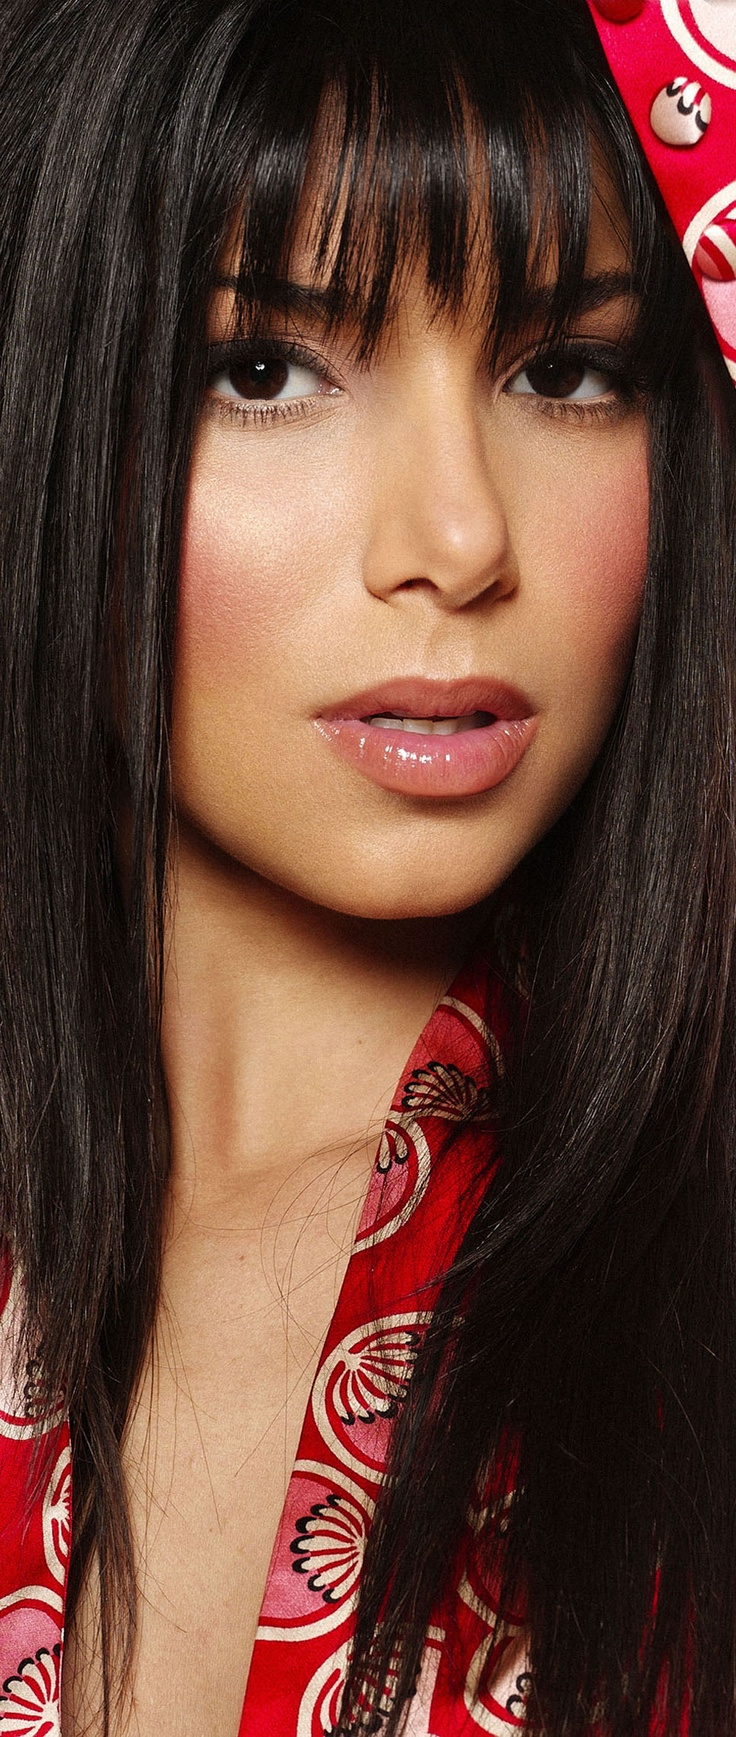 hispanic singles in roslyn Roselyn sanchez, actress: act of valor roselyn sanchez was born on april 2, 1973 in san juan, puerto rico she is an actress, known for act of valor (2012), rush hour 2 (2001) and without a trace (2002).